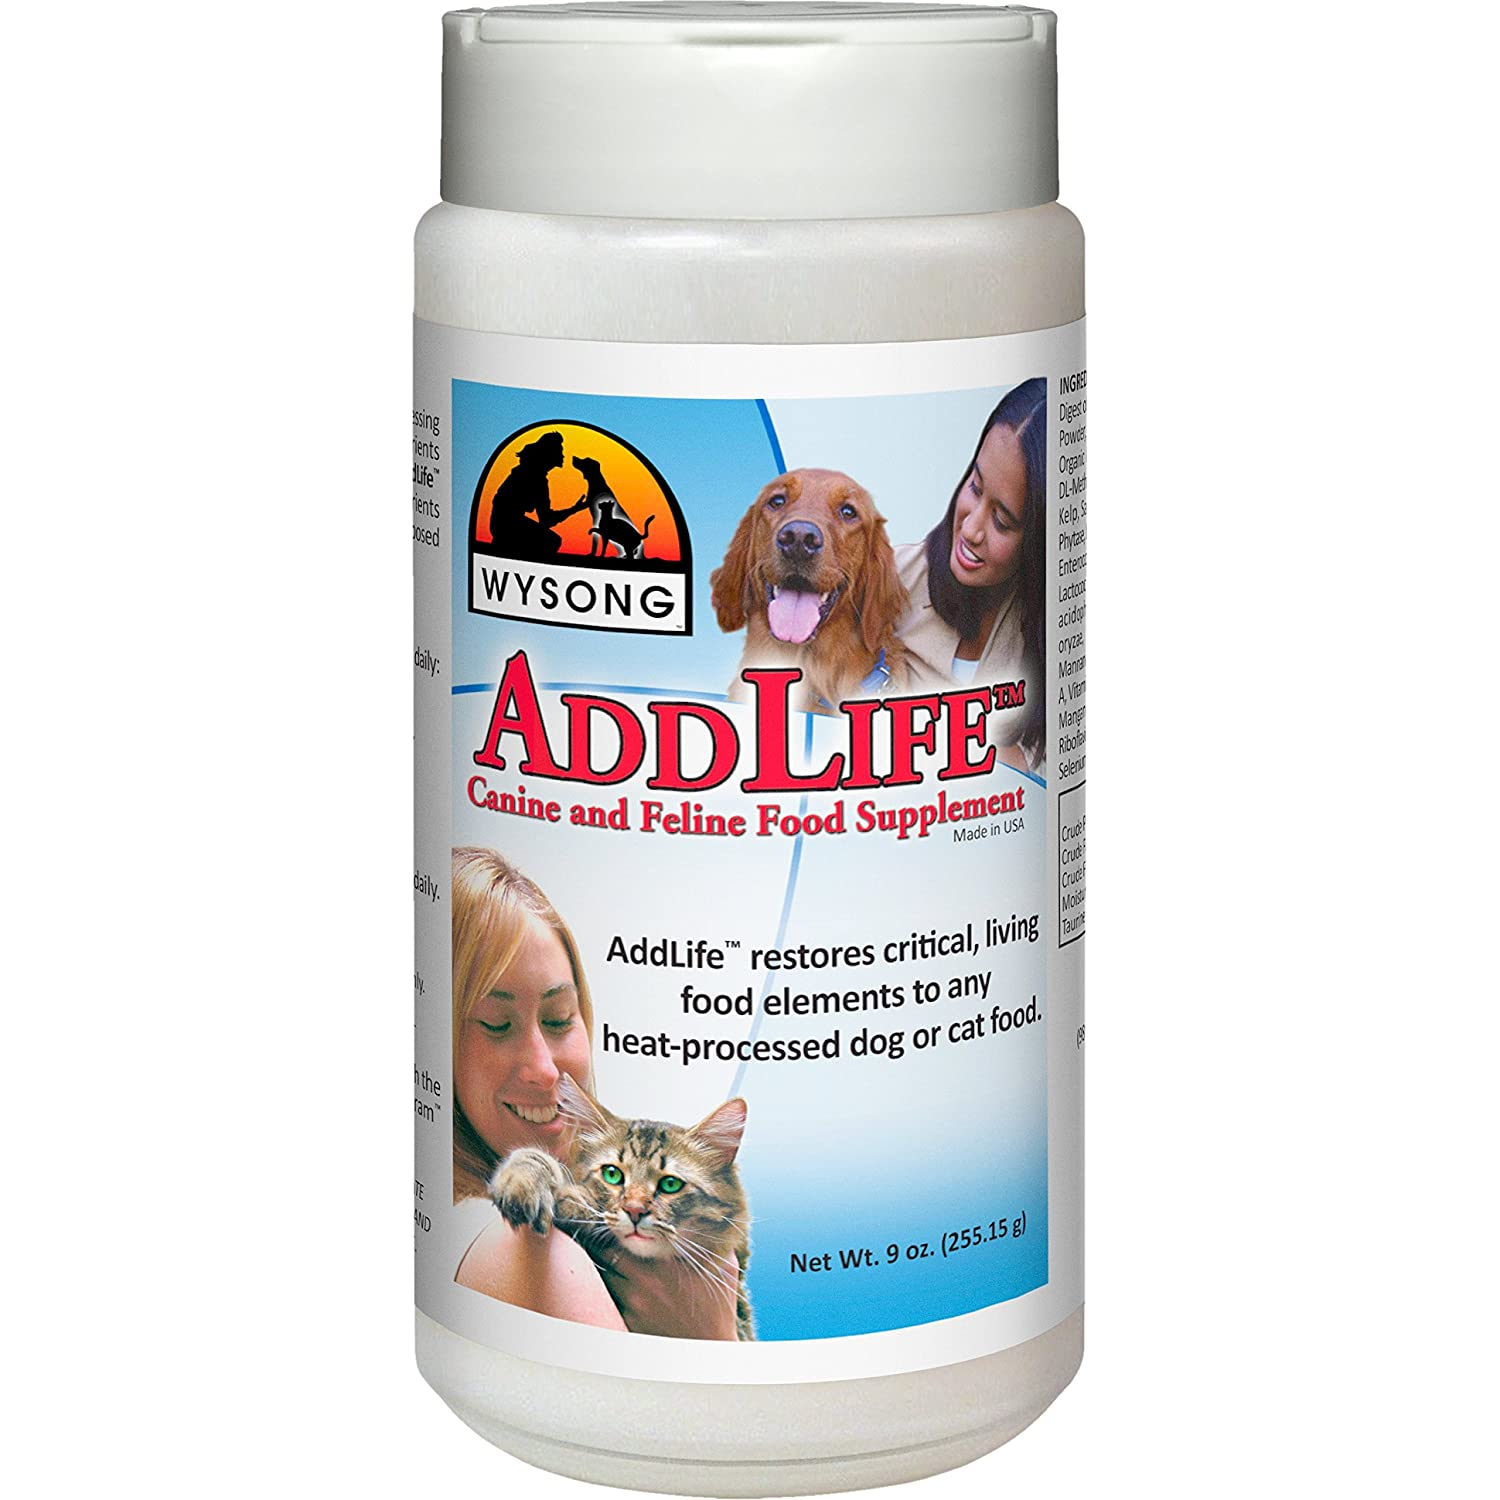 9-oz canister Wysong Addlife Canine Feline Food Supplement For Dog Cat 9 Ounce Bottle